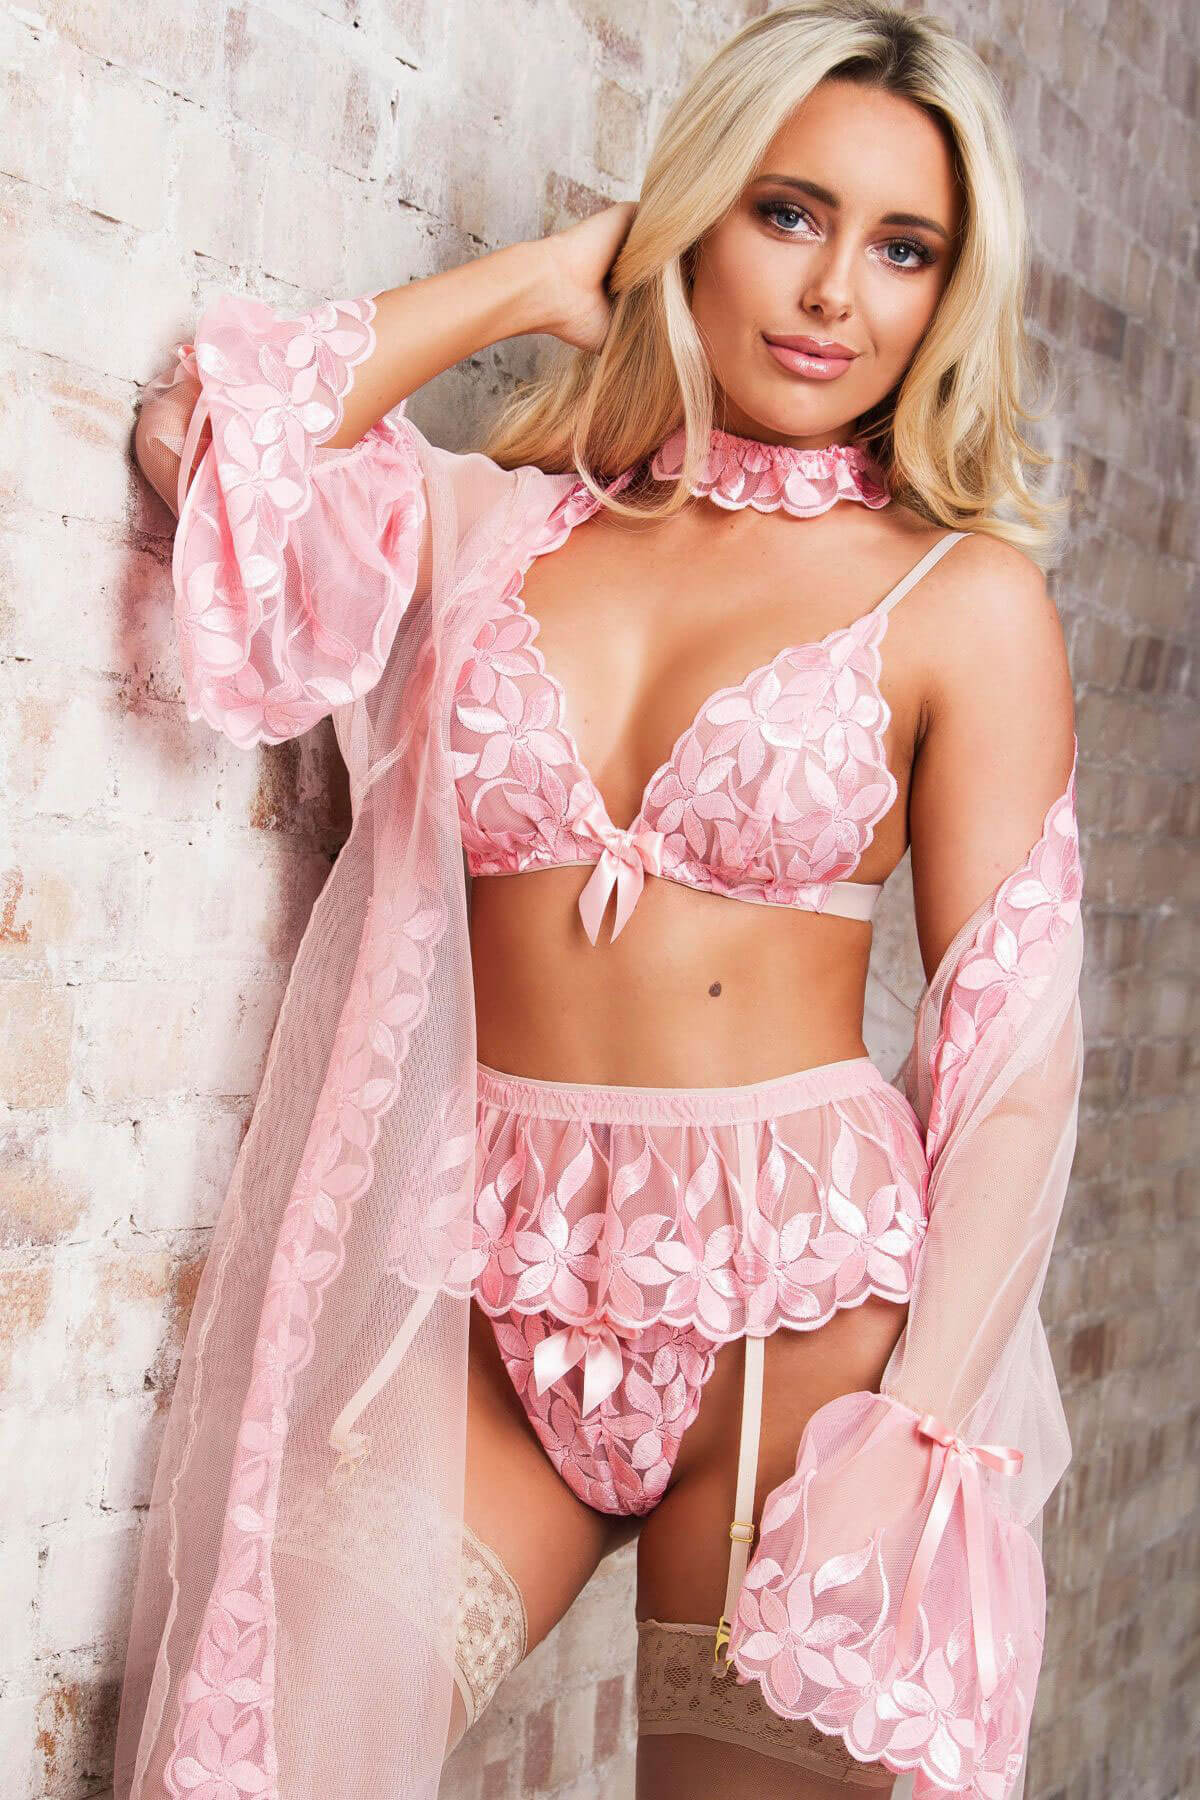 Amber Turner Poses for With Love Lily Lingerie, January 2018 Issue